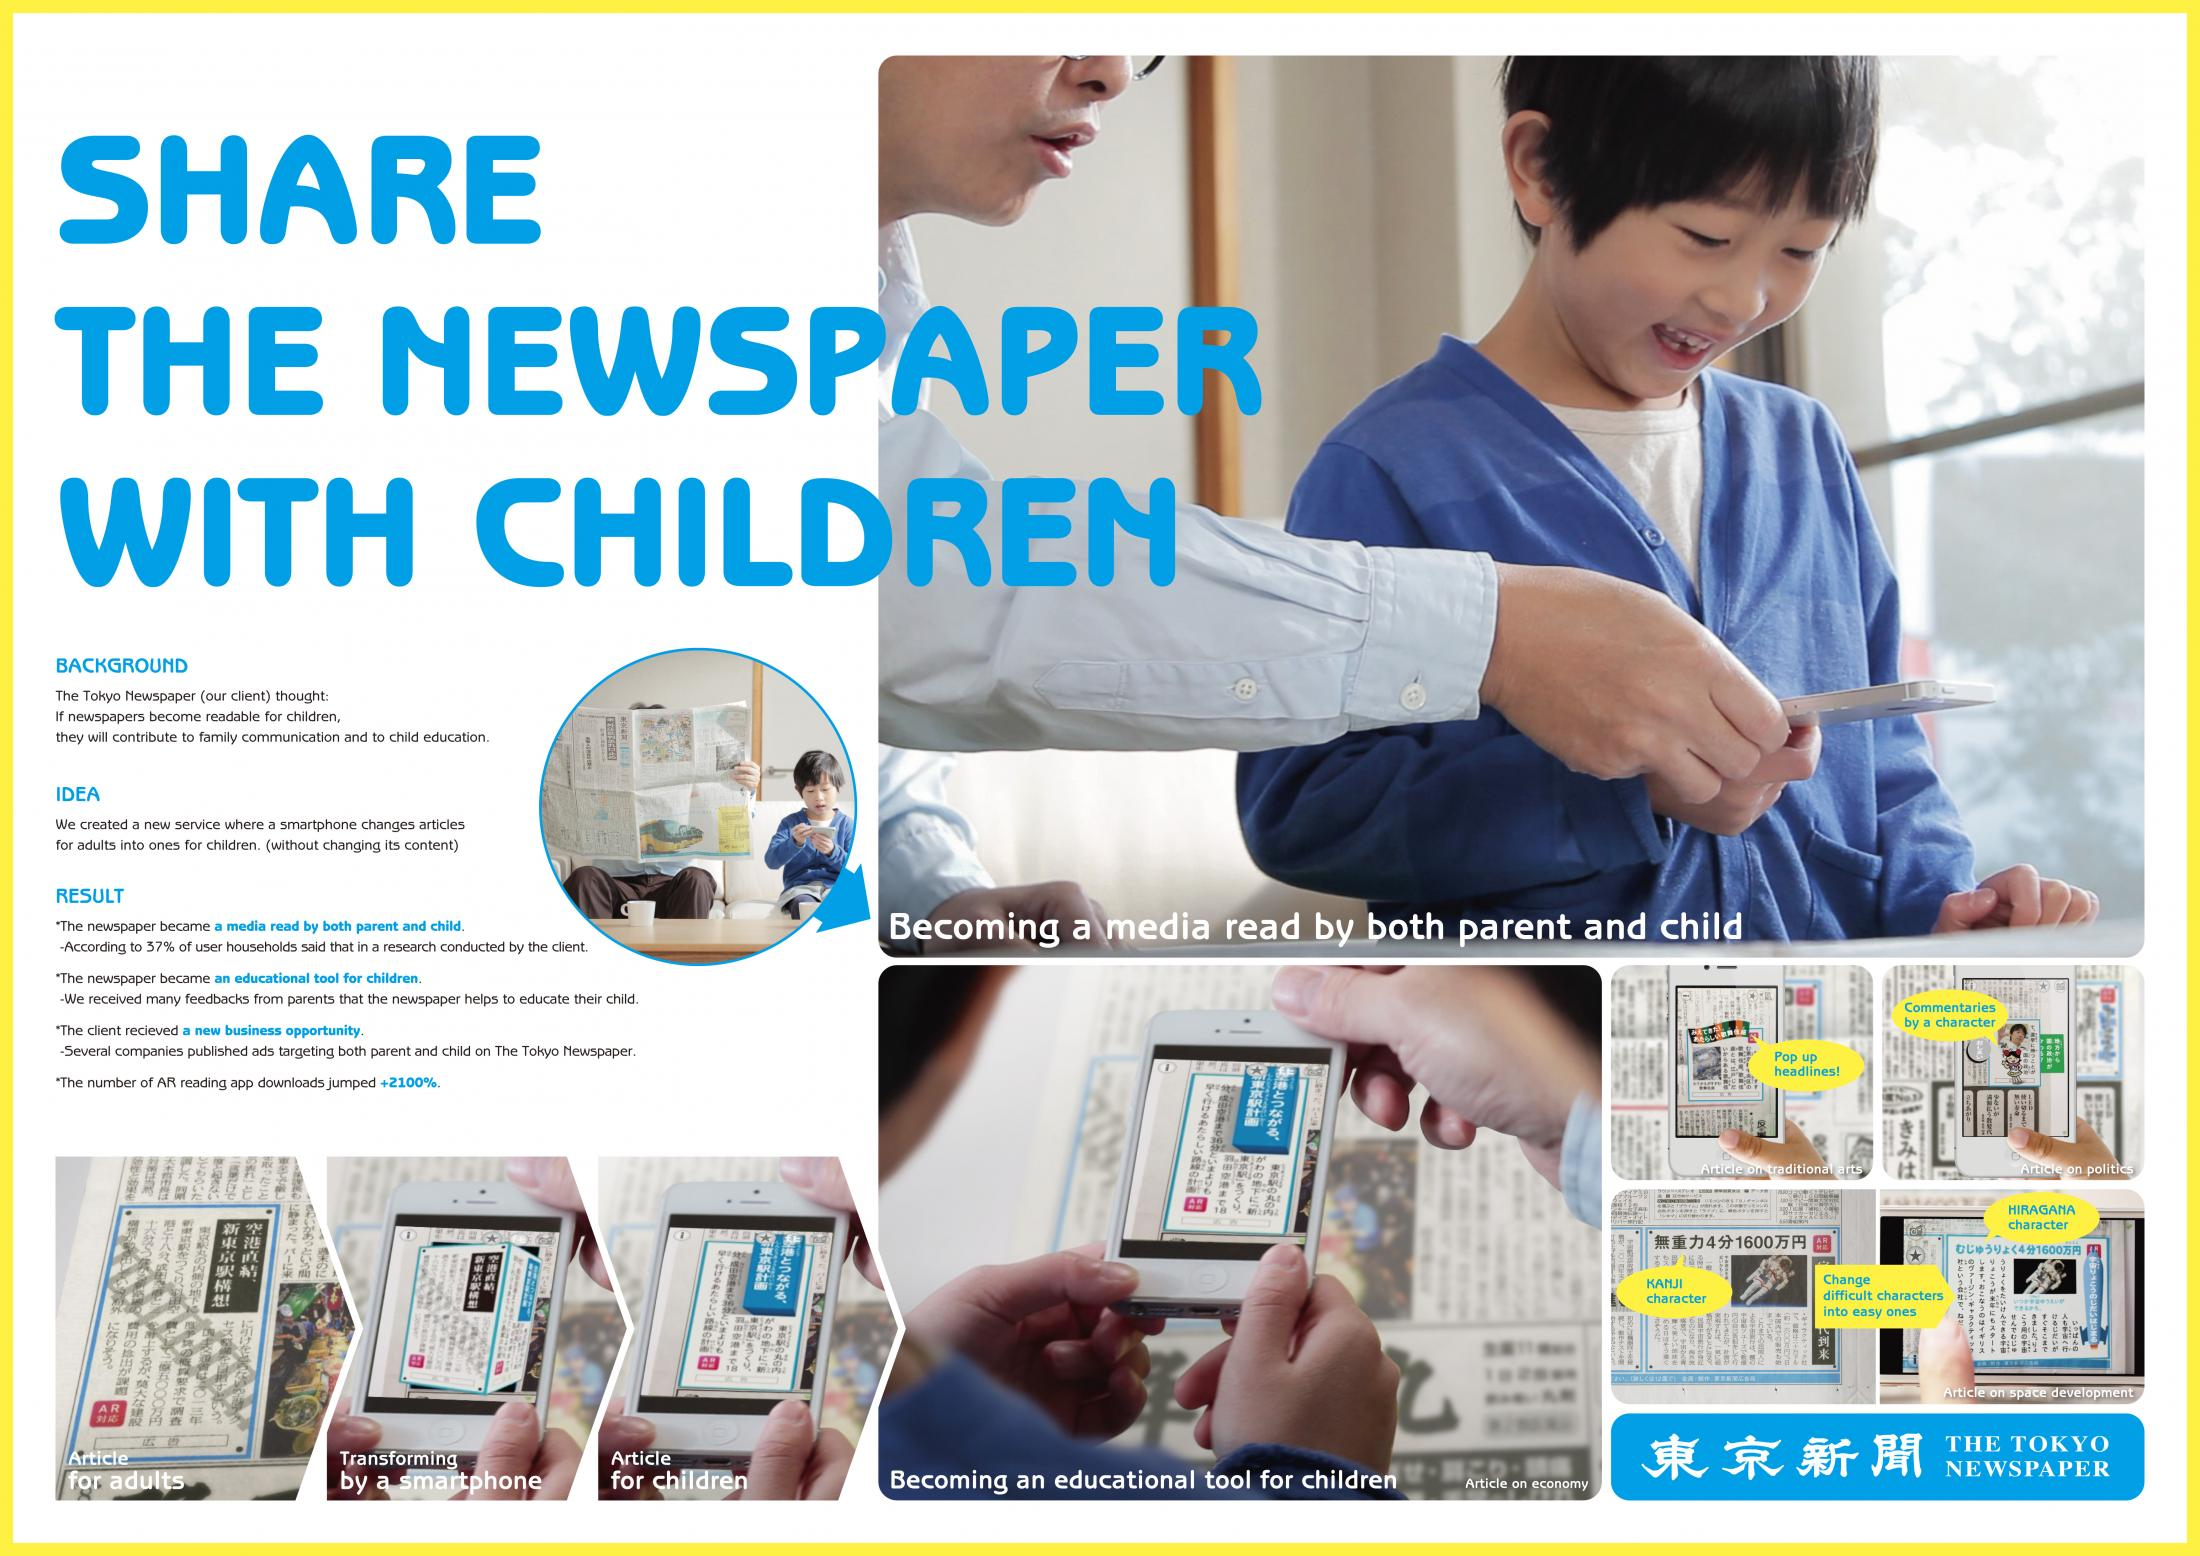 Thumbnail for Share the Newspaper with Children